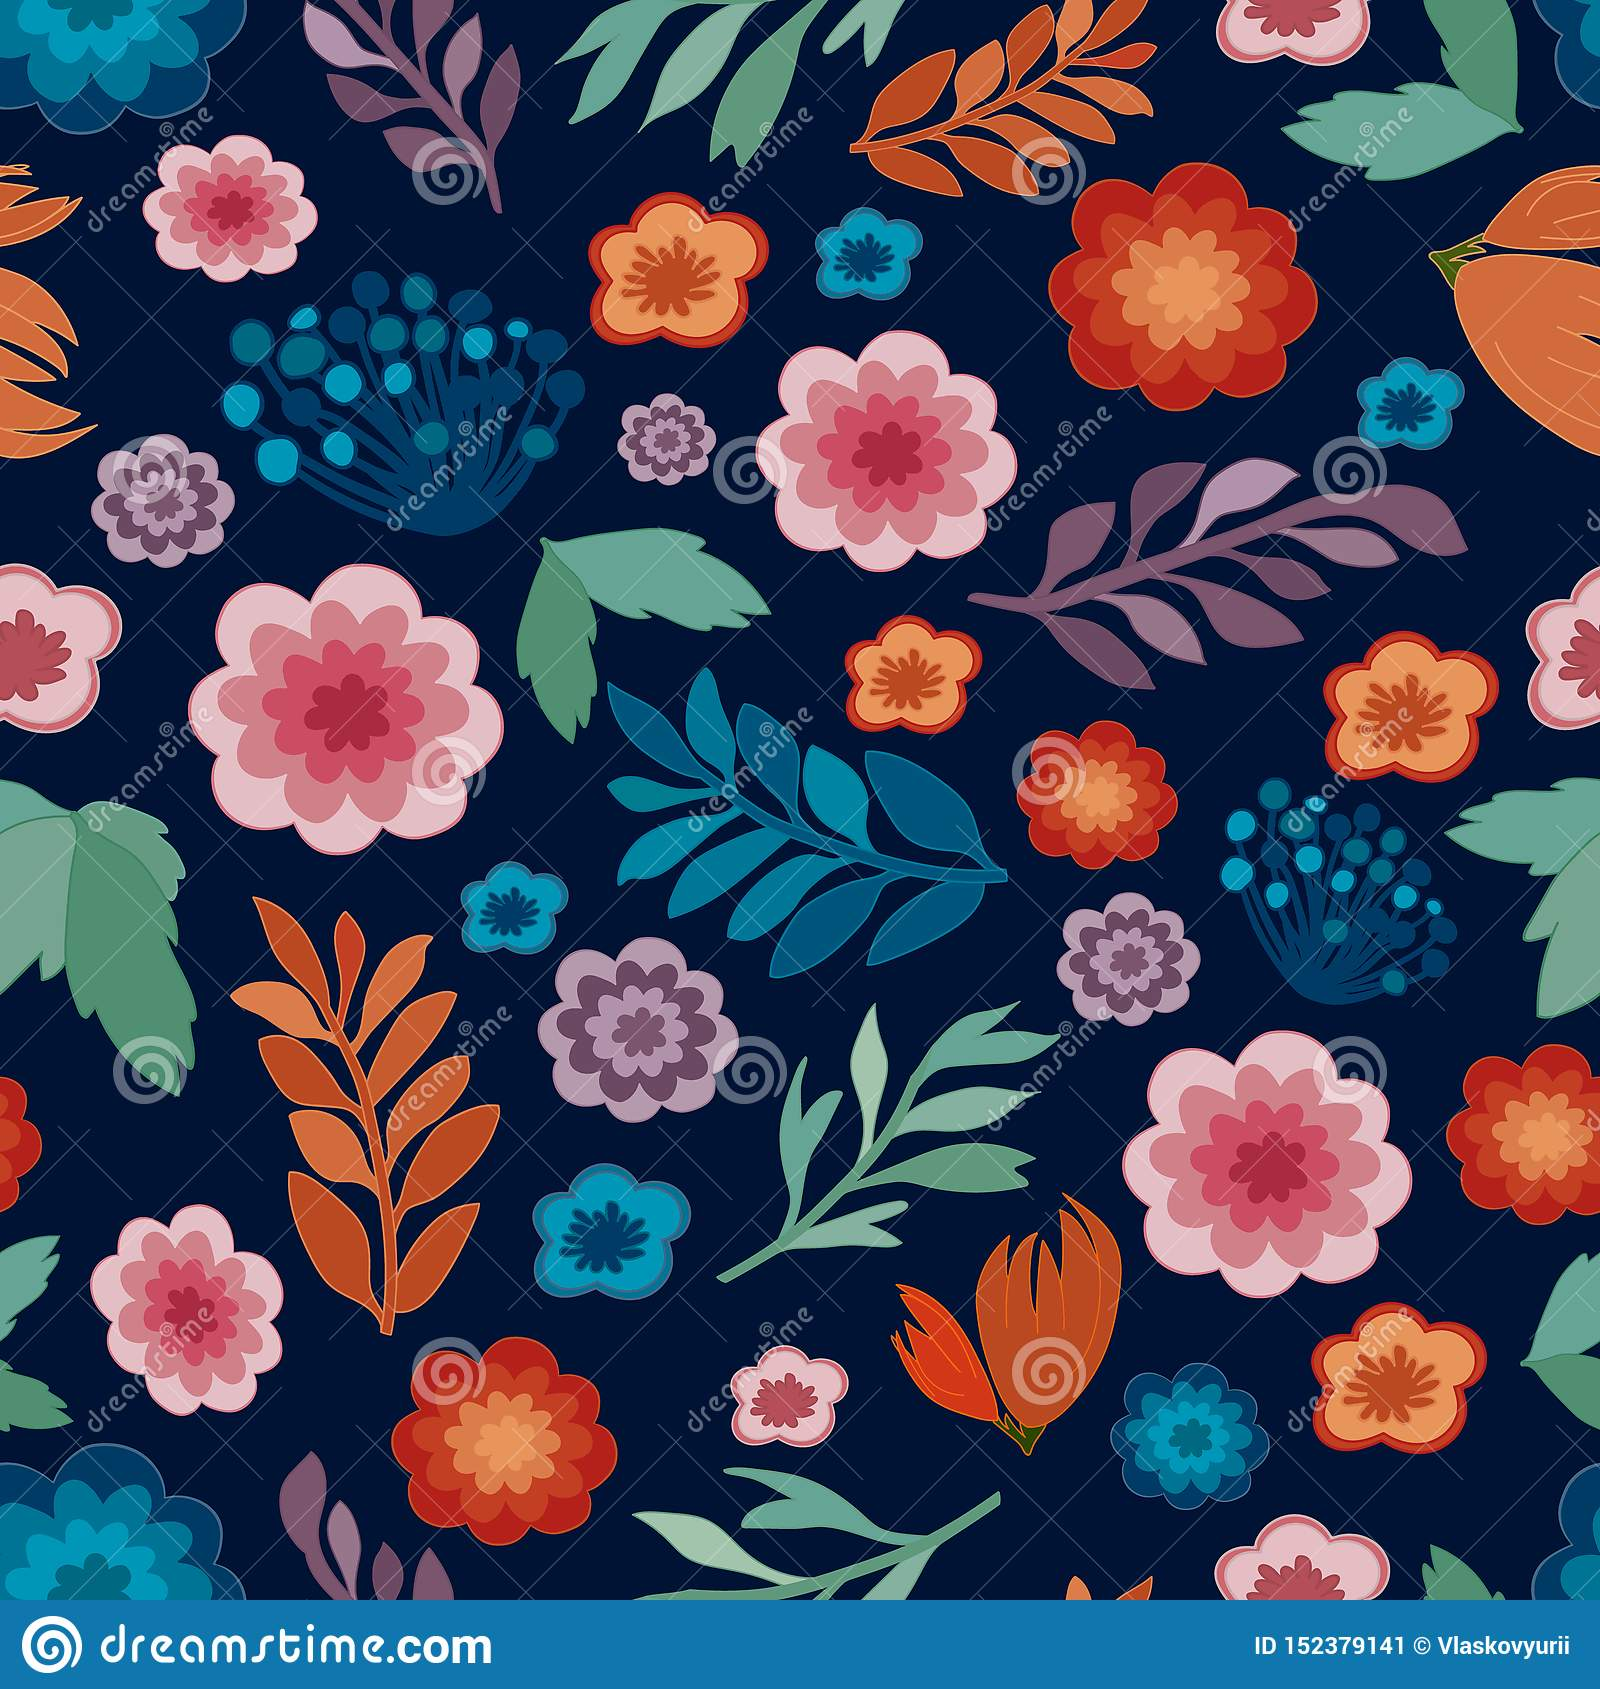 Cute floral seamless texture, repeatable pattern